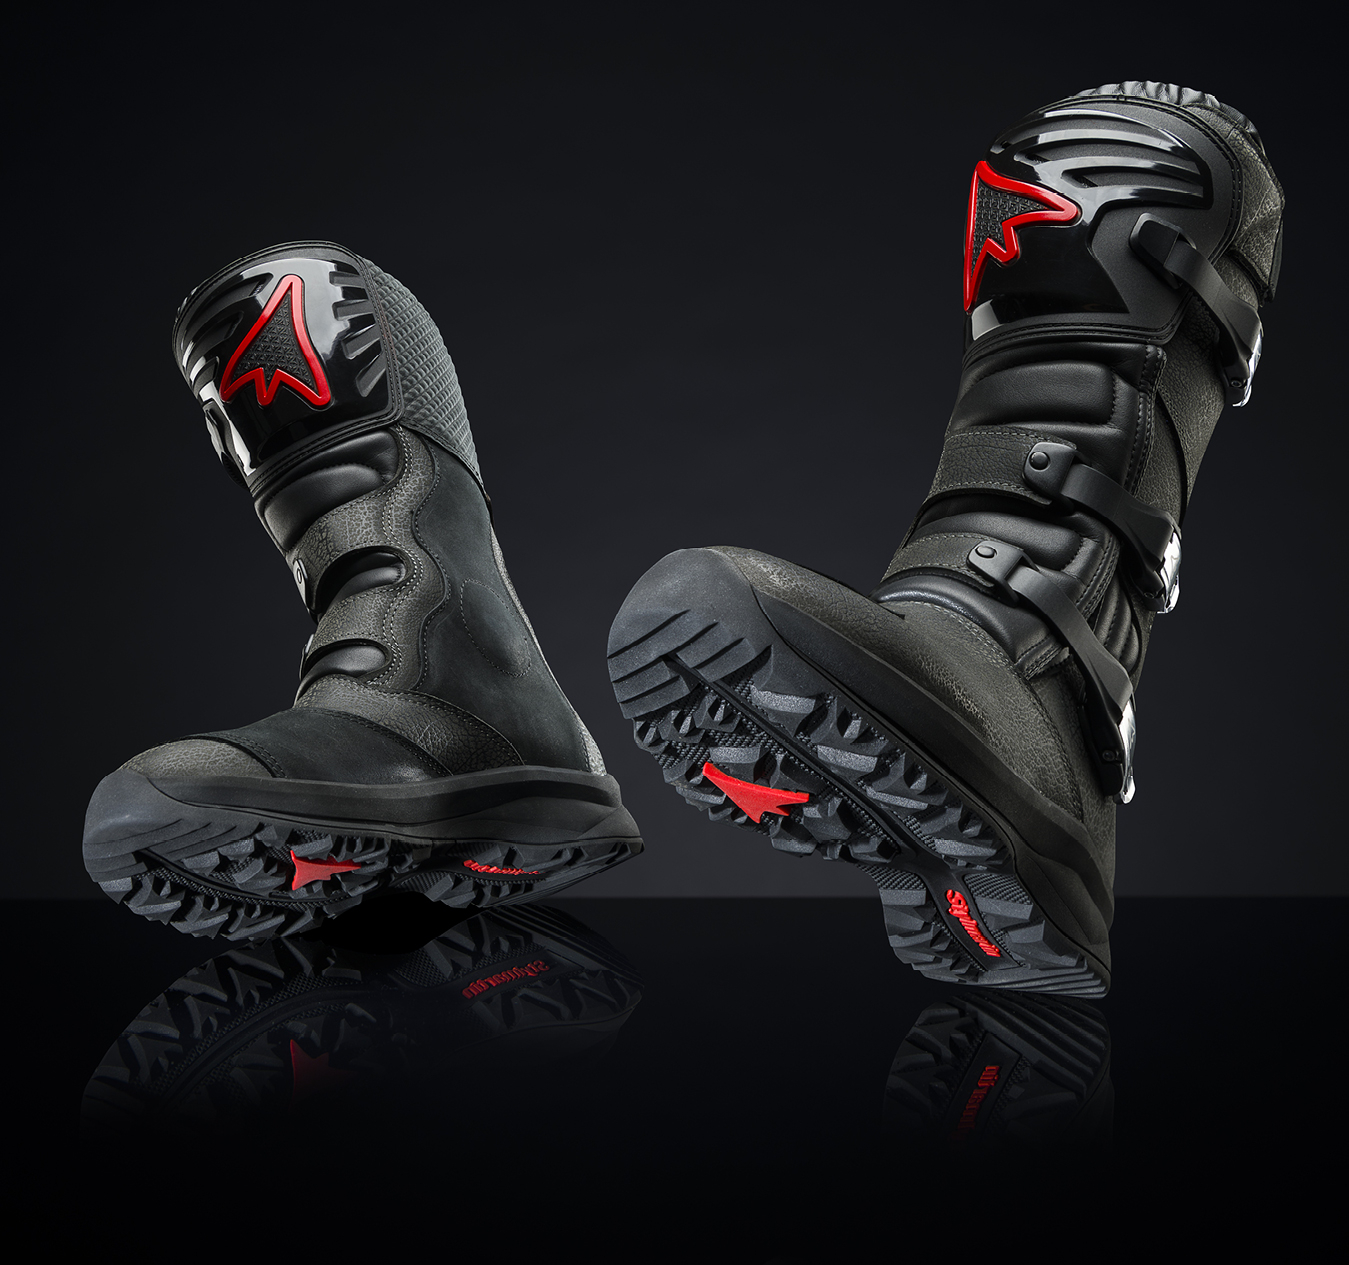 Stylmartin presents its new NAVAJO WP touring boots